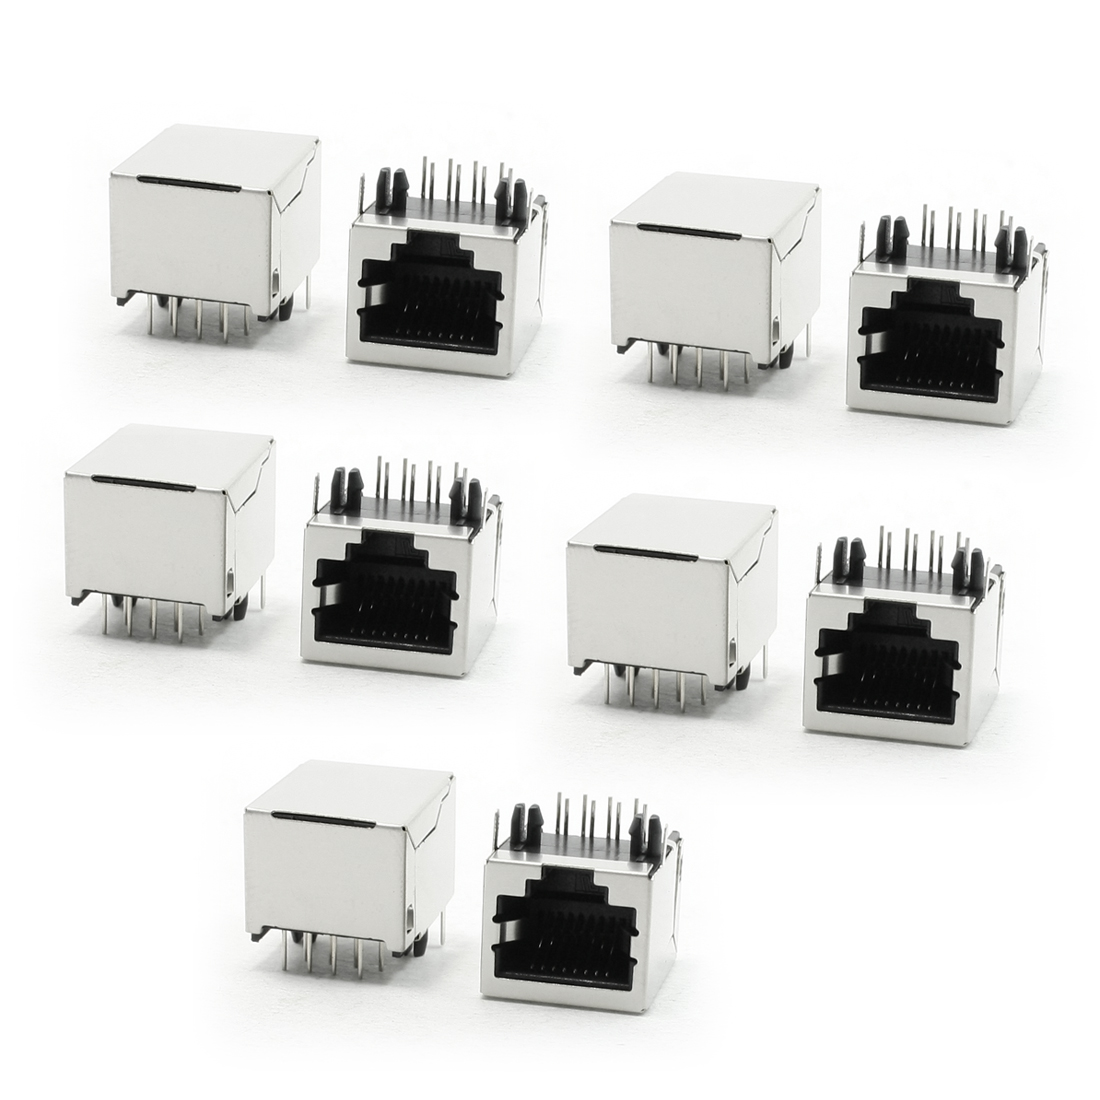 10 Pieces Stainless Steel Shielded 8P8C RJ45 PCB Jacks Connectors 18mm Long